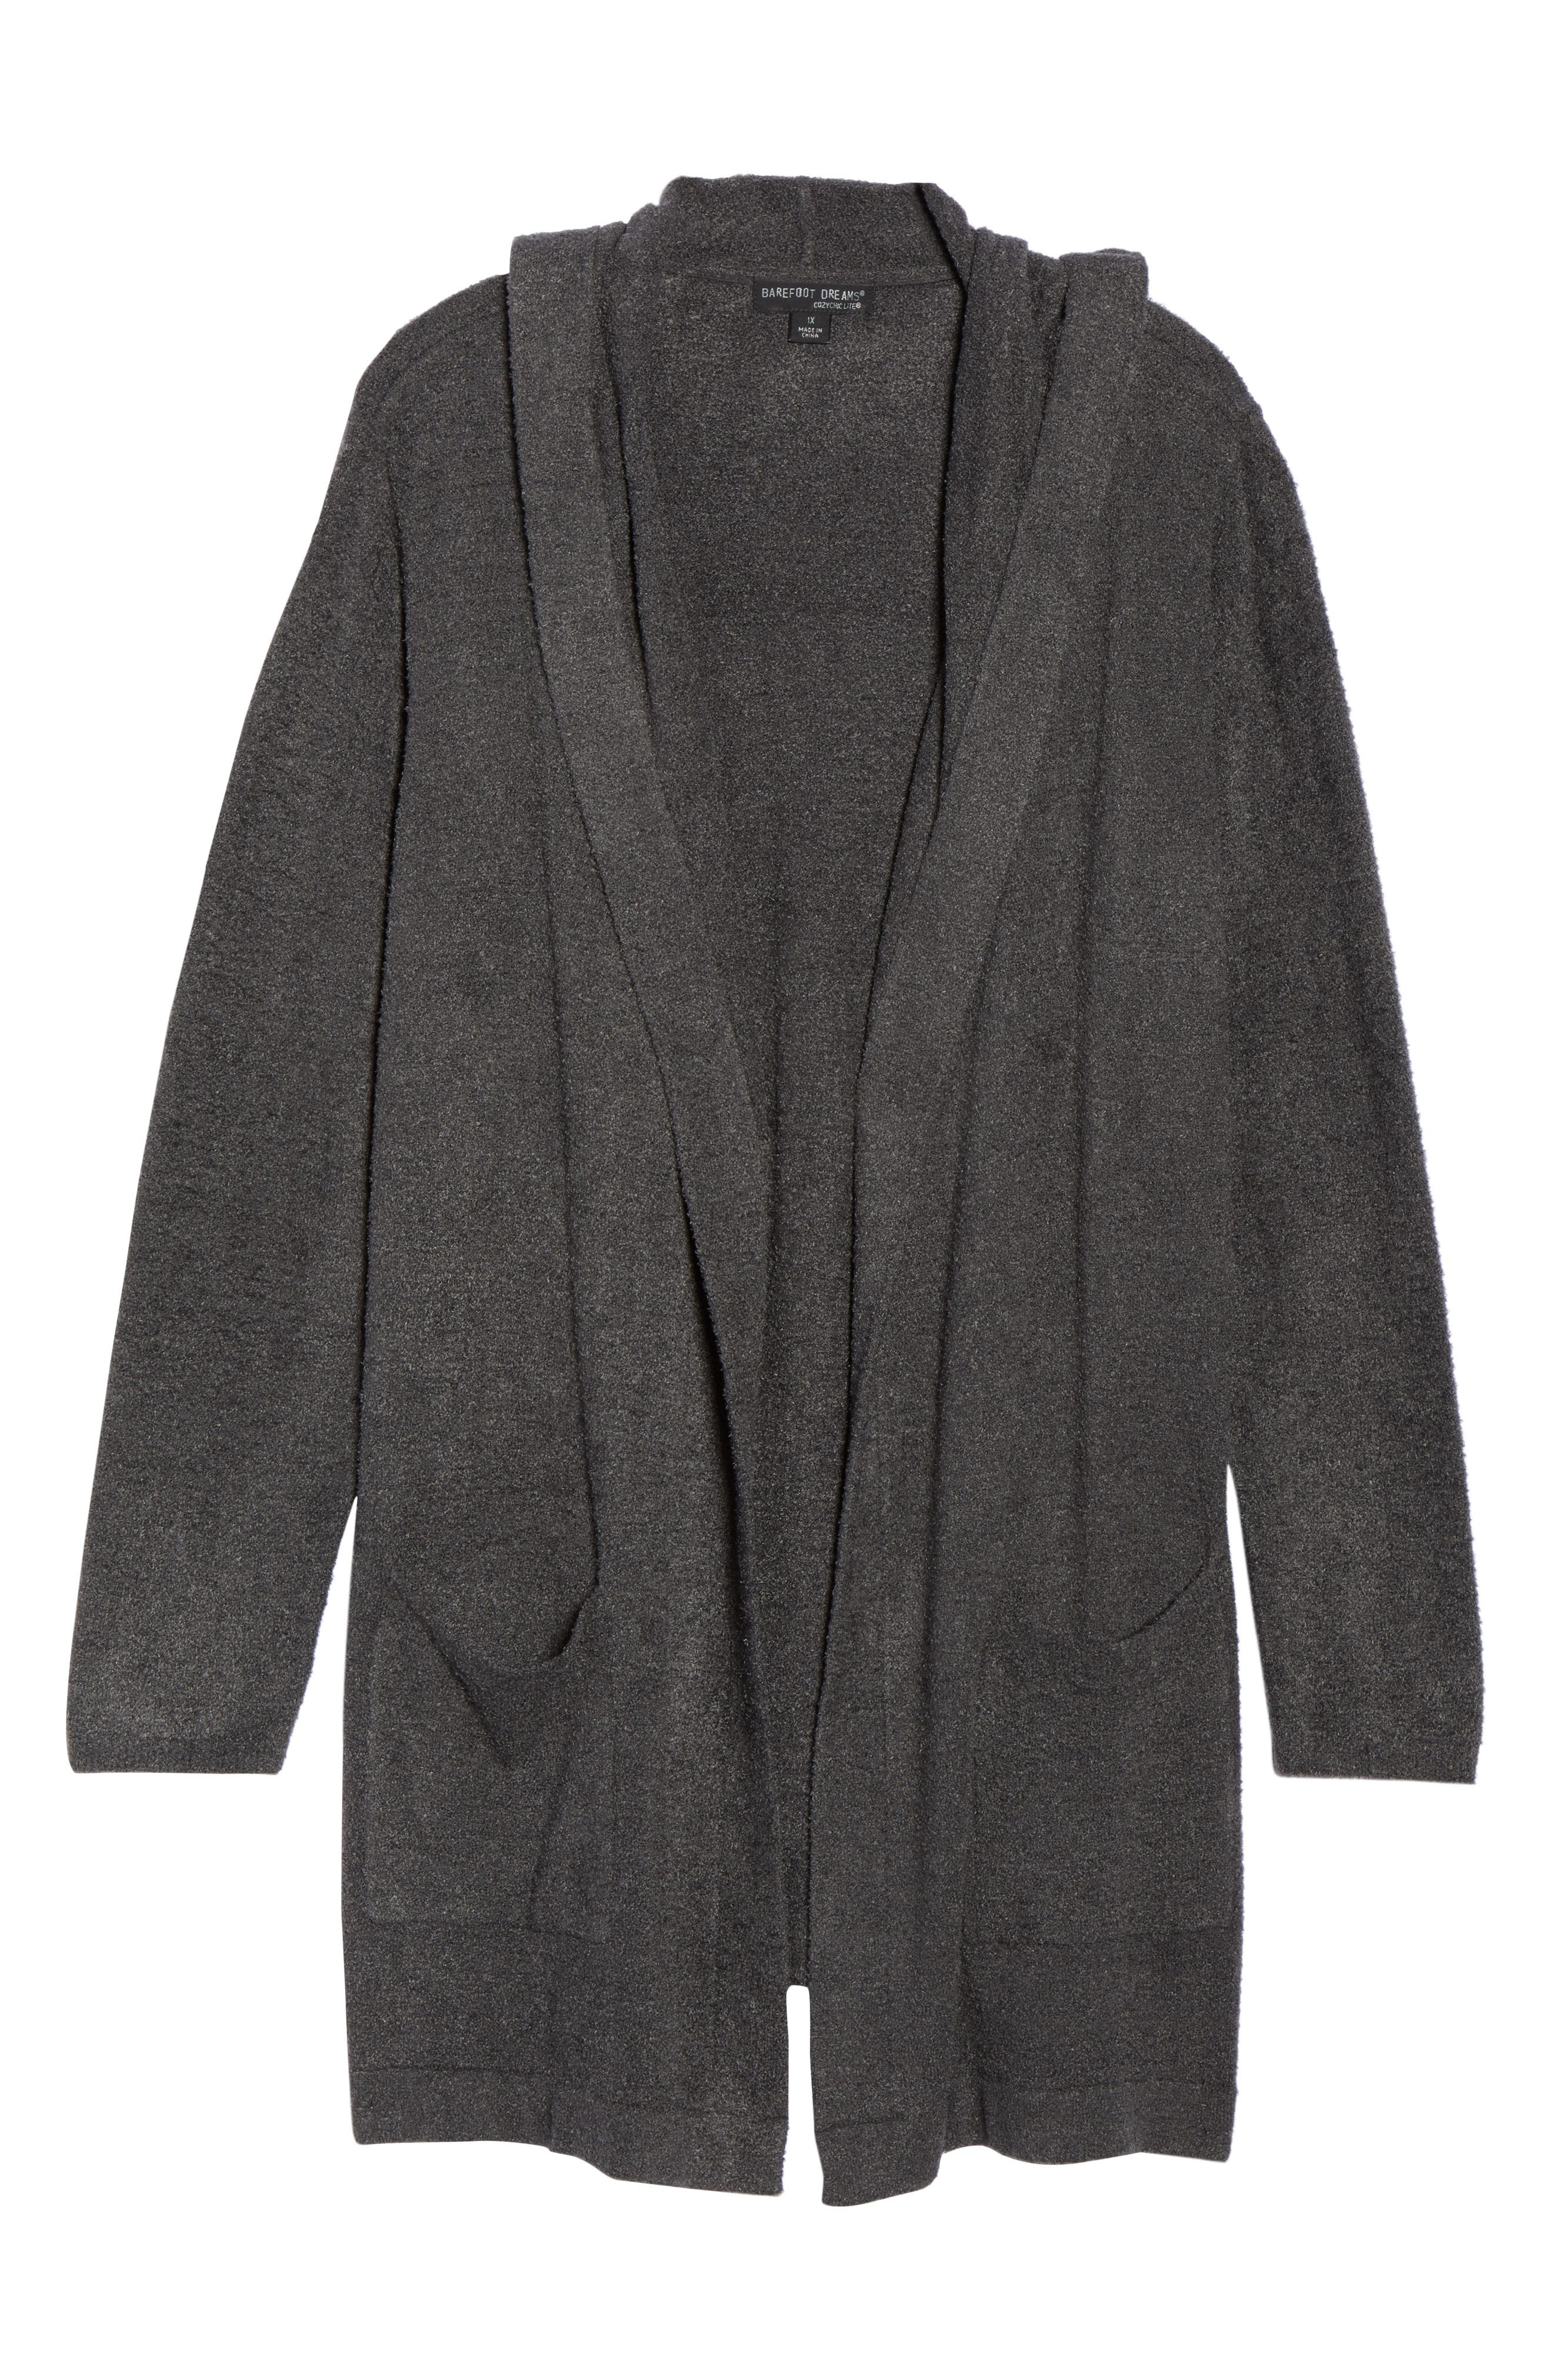 Cozychic Lite<sup>®</sup> Coastal Hooded Cardigan,                             Alternate thumbnail 6, color,                             CARBON